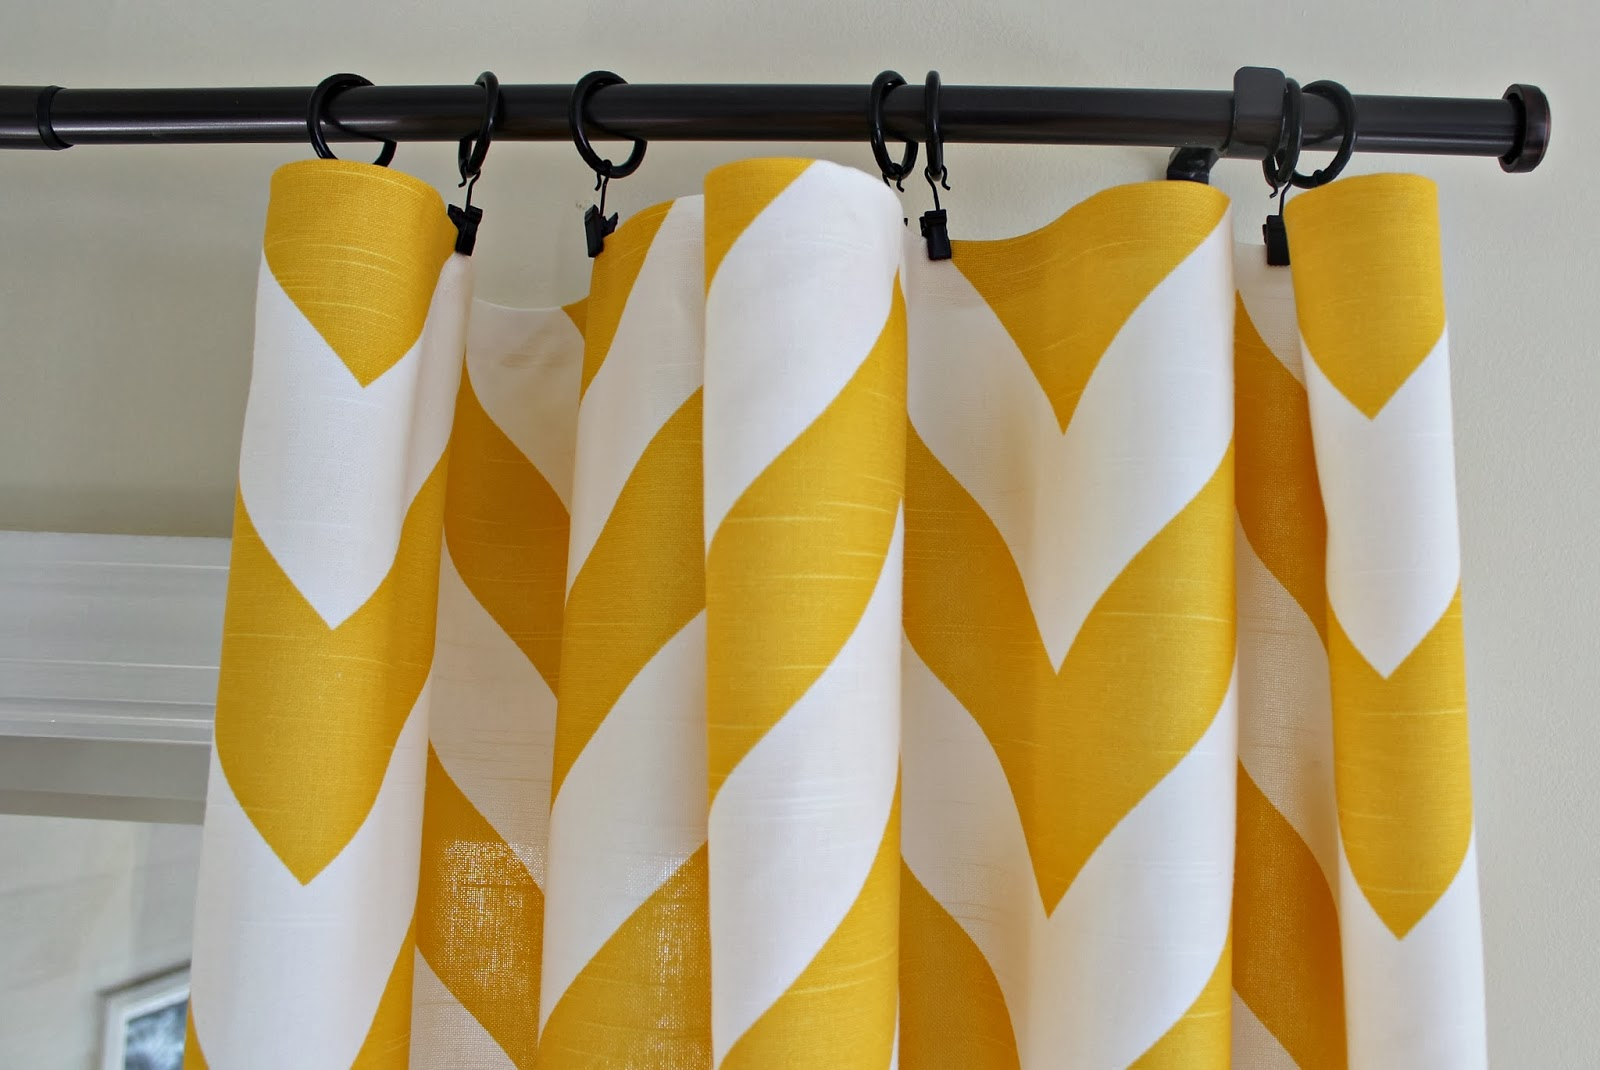 Yellow chevron kitchen curtains - I Used My Iron To Fold Down The Edges And Then Put Heat N Bond Inside The Folds To Hem The Top And Both Sides Of Each Panel